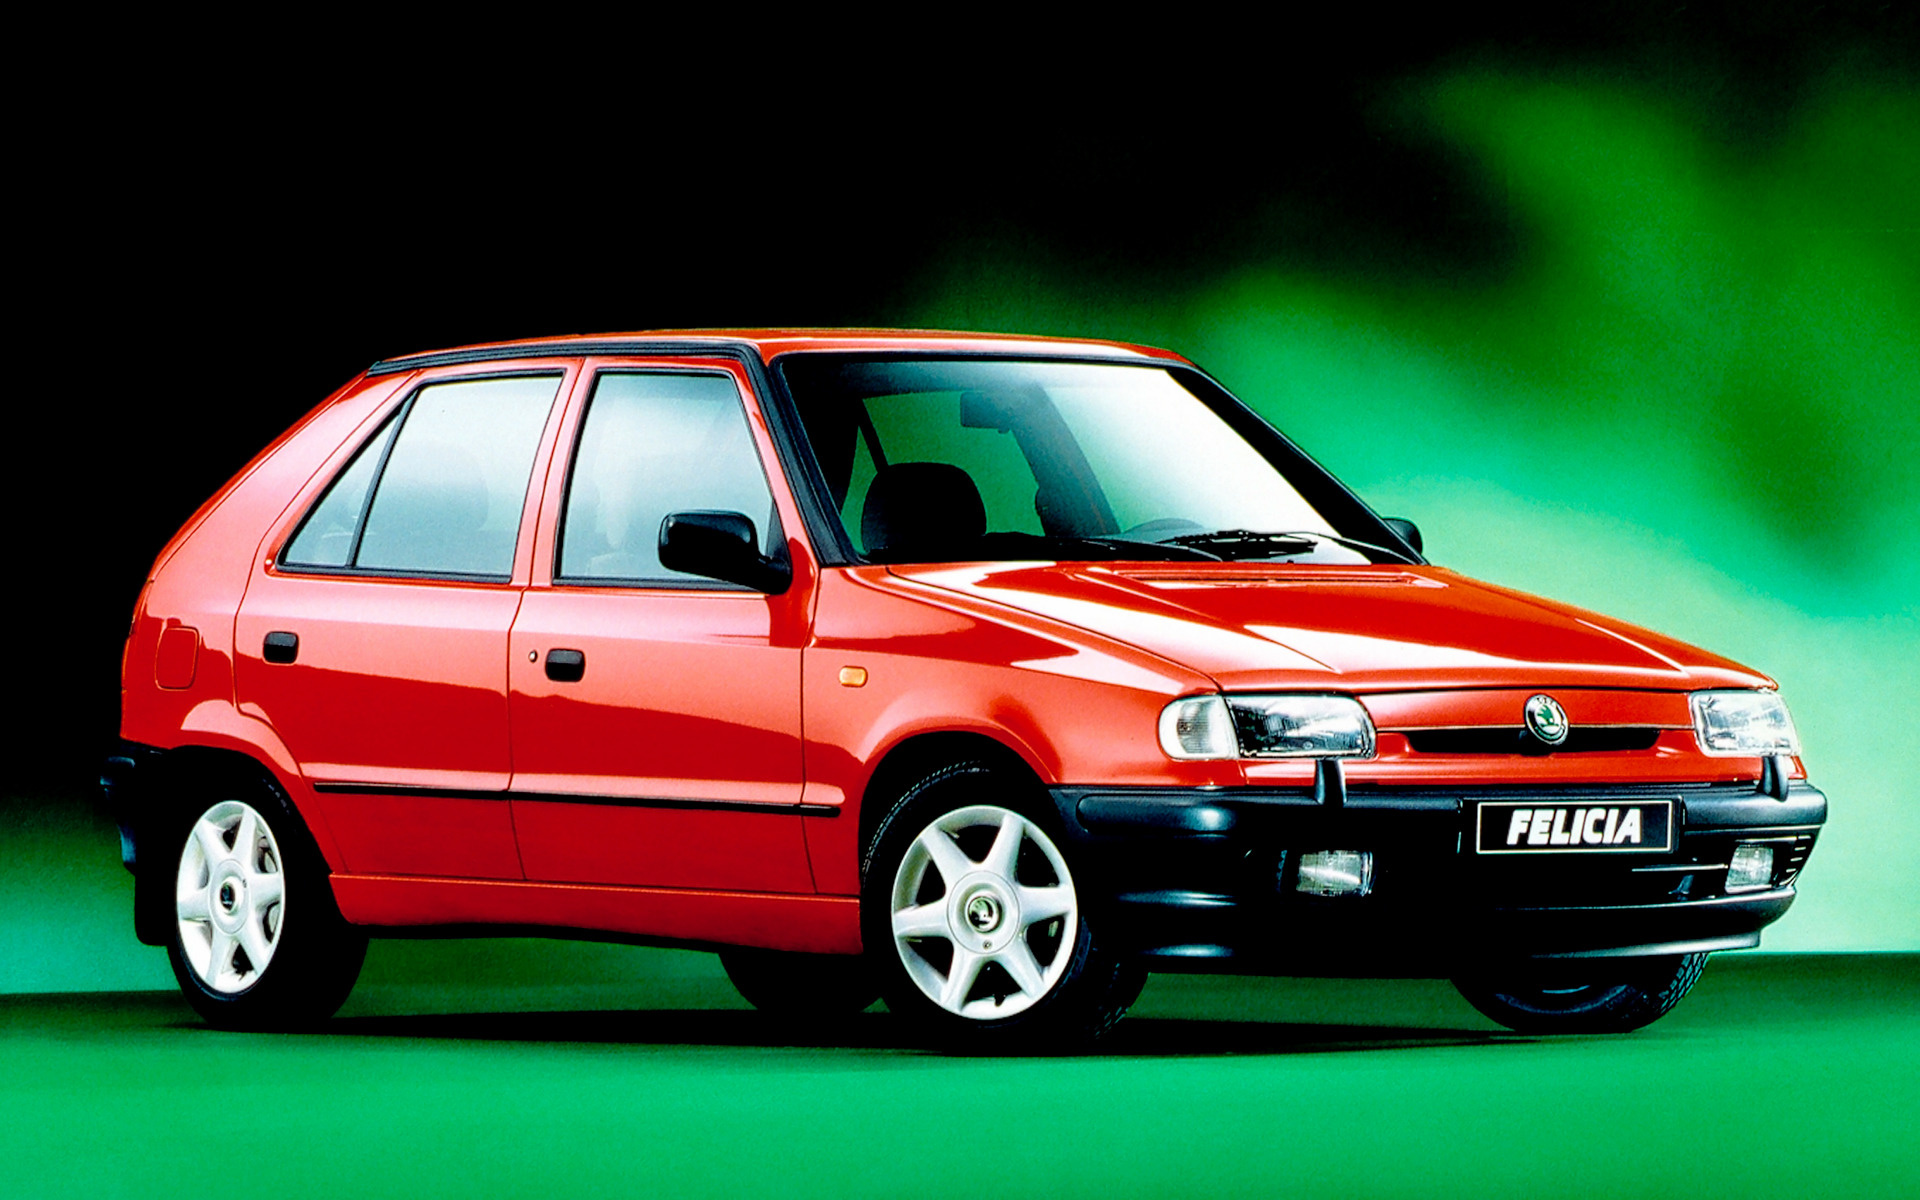 Skoda Felicia (1994) Wallpapers and HD Images - Car Pixel